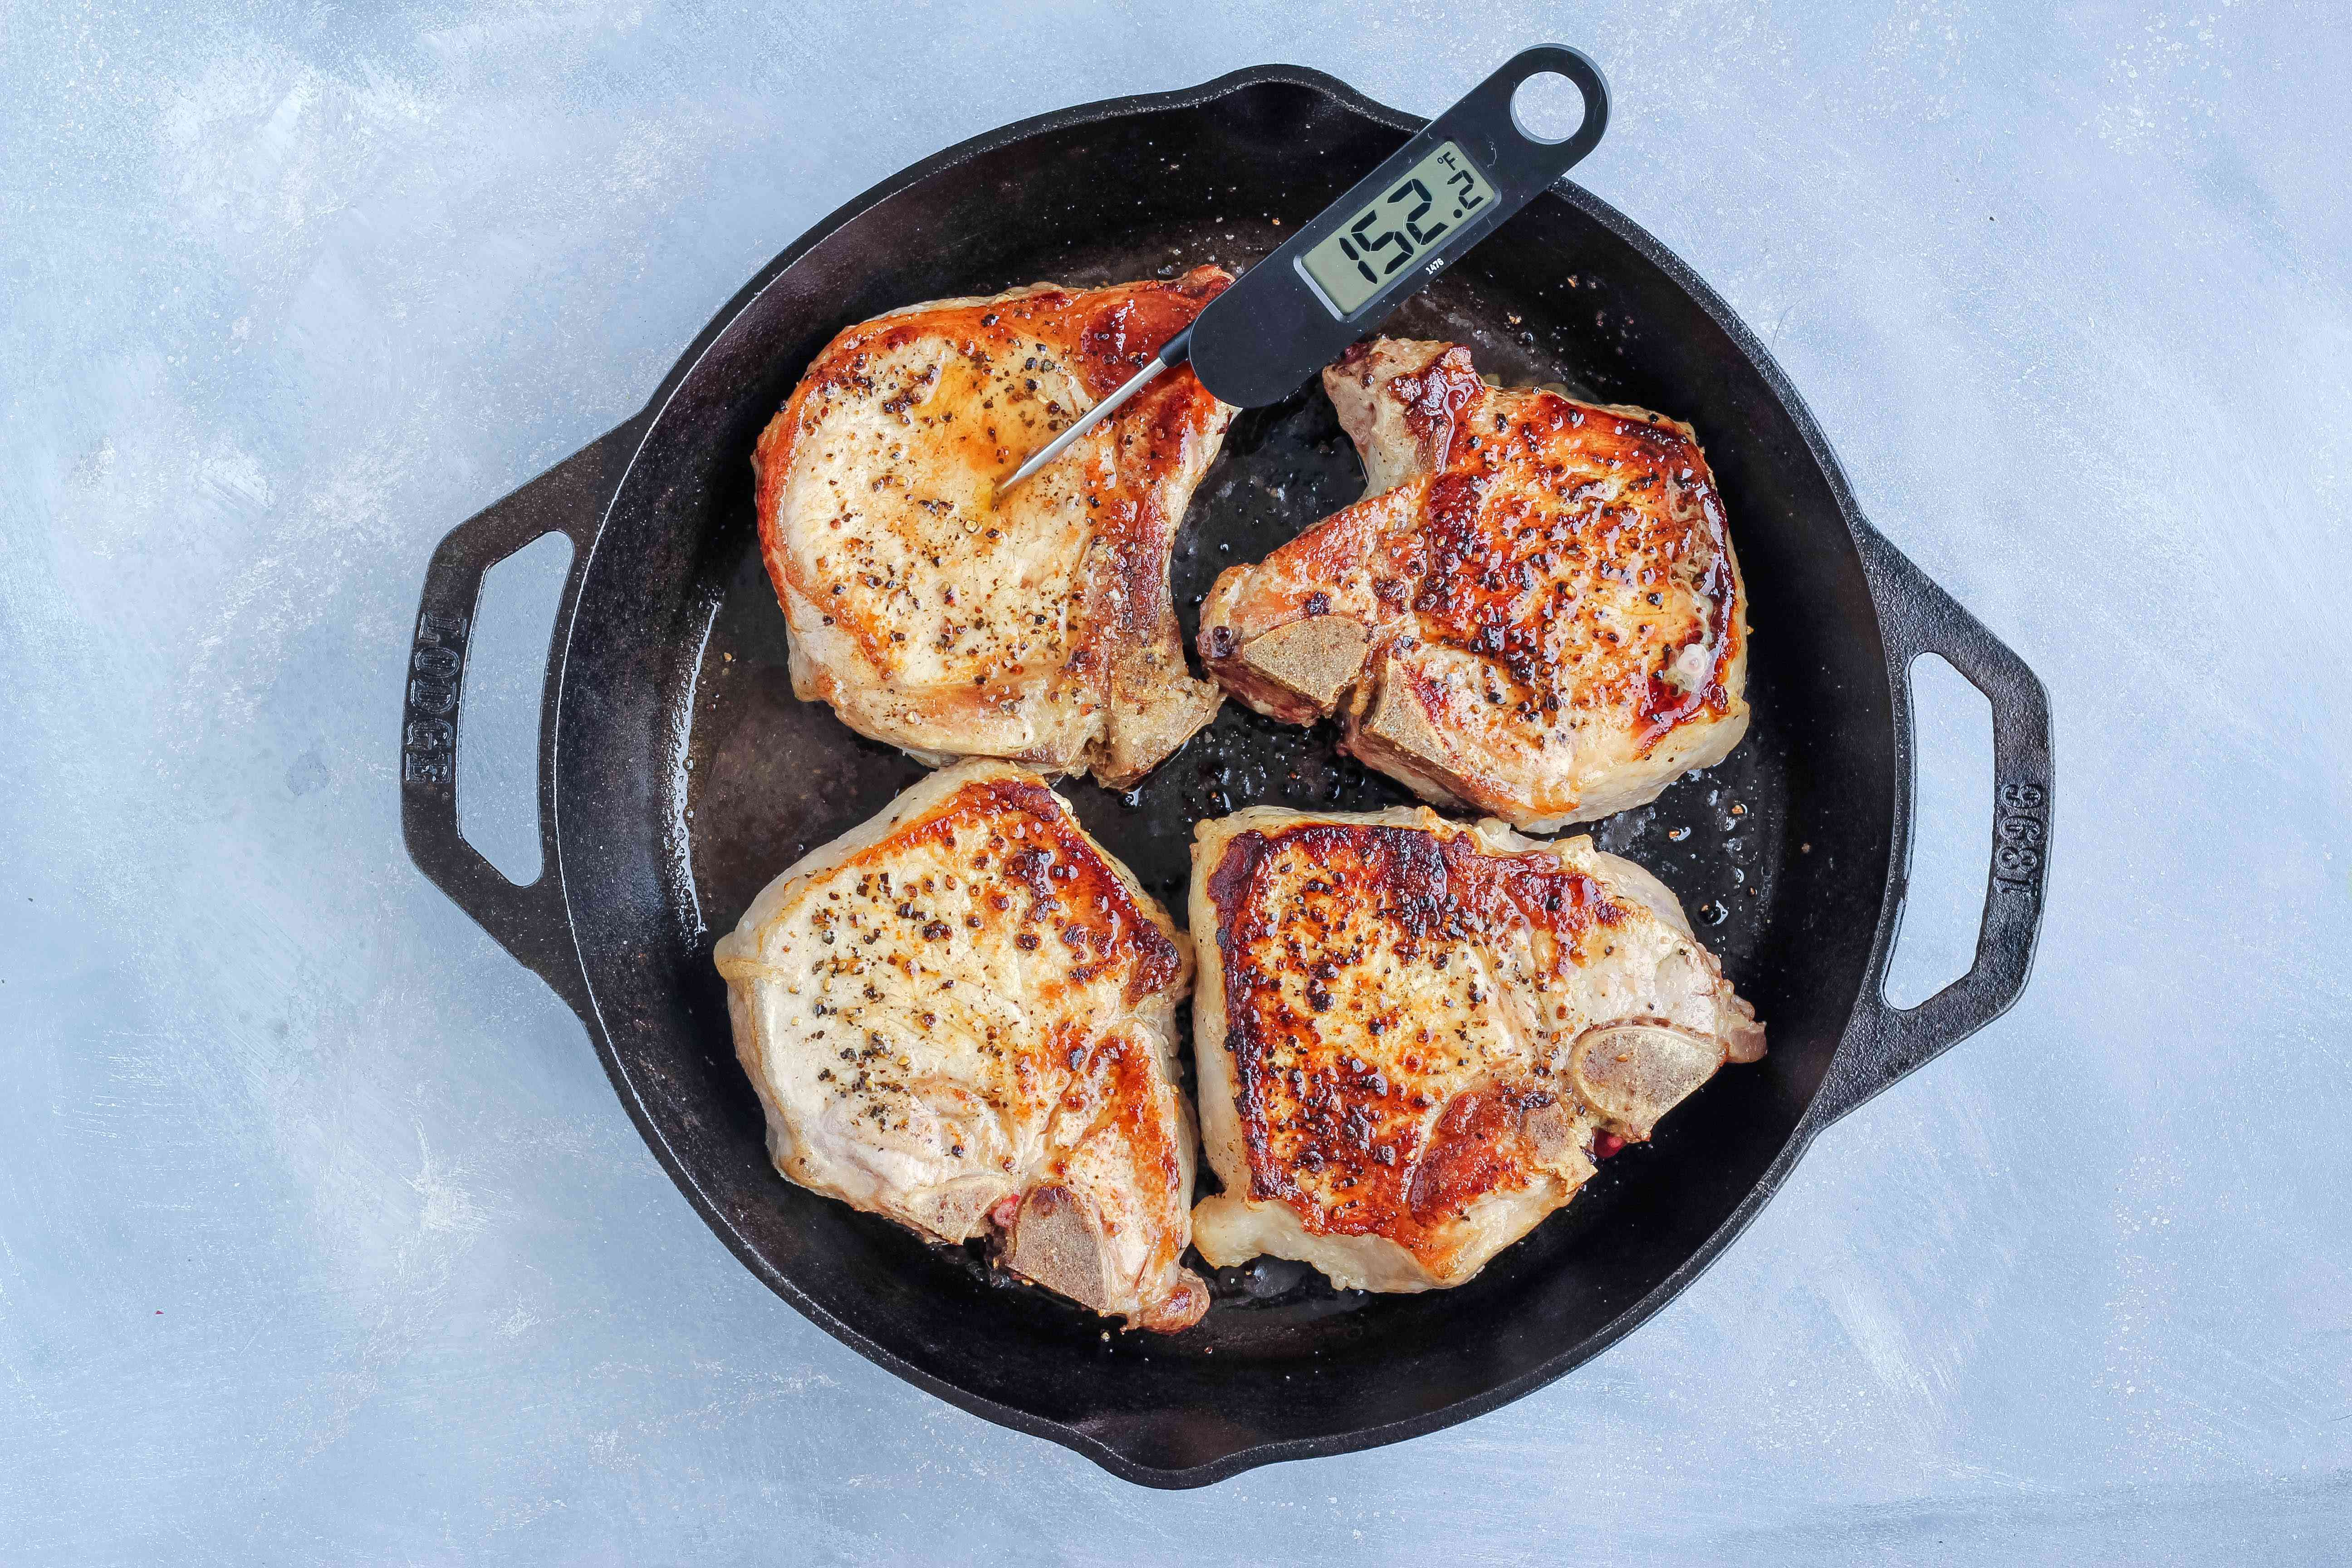 Testing pork chops with an instant-read thermometer